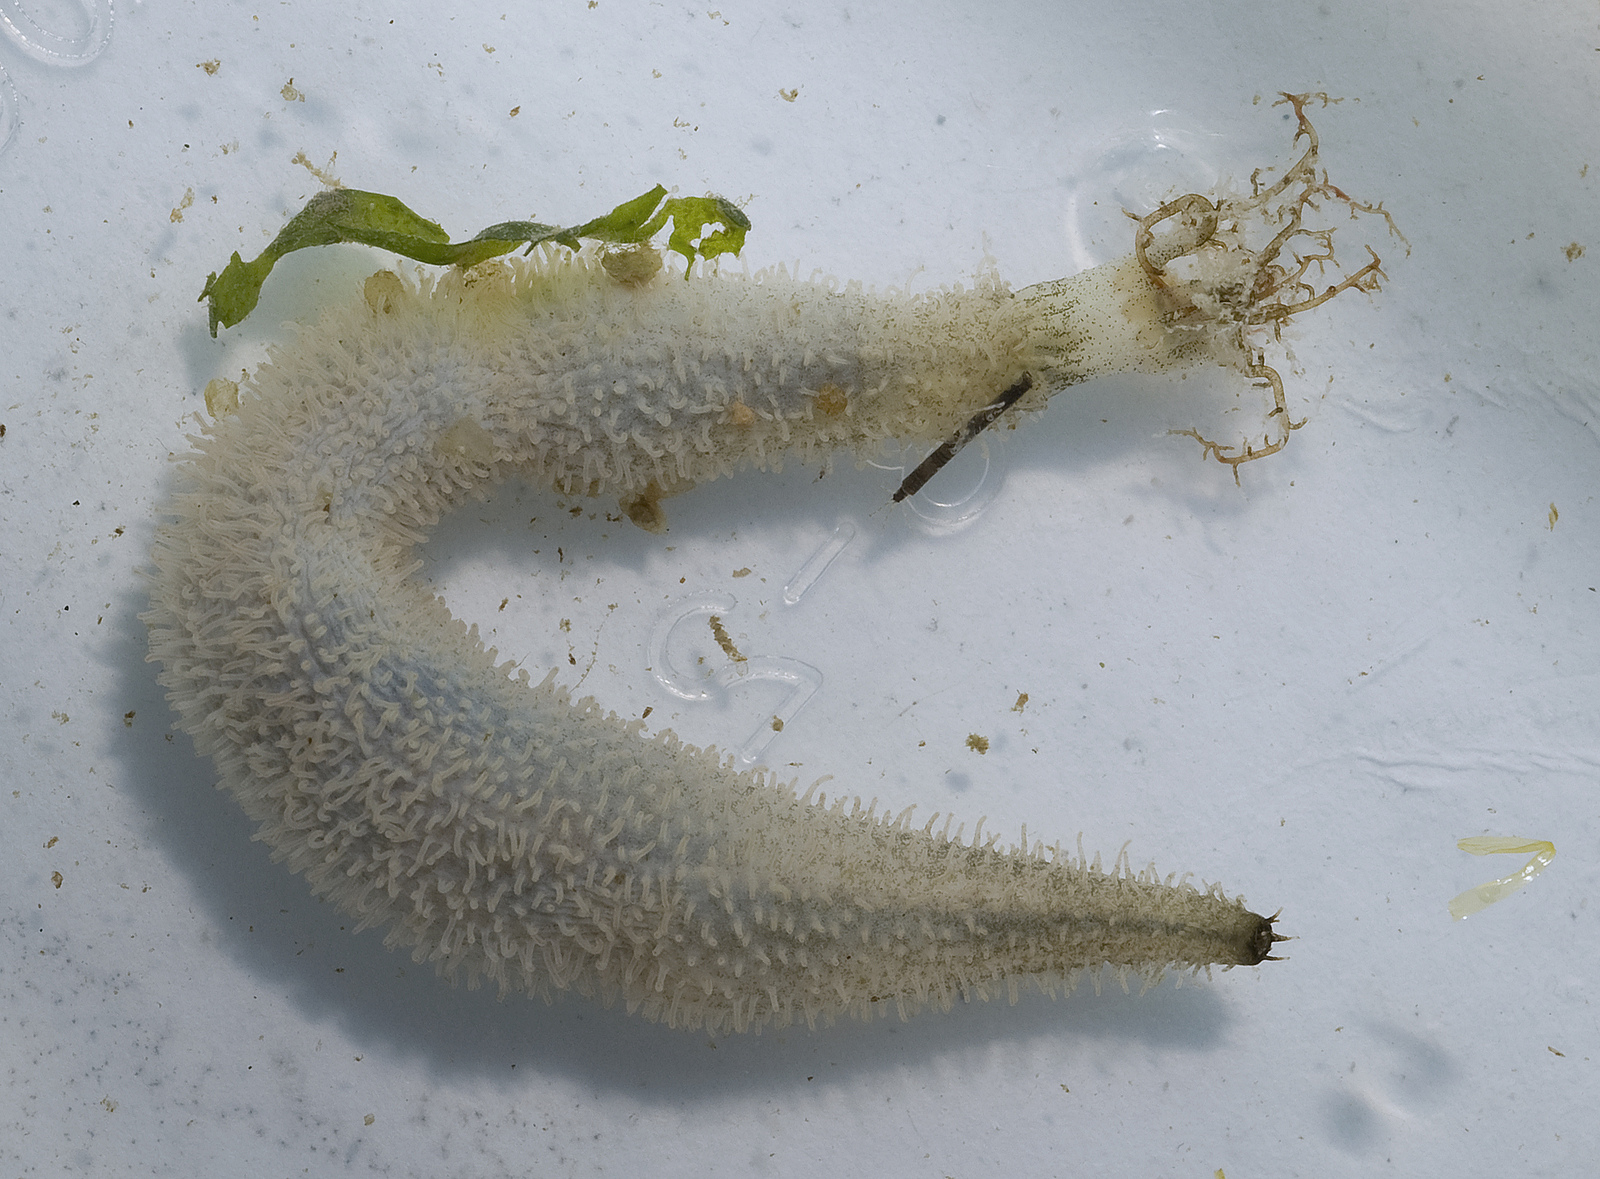 white sea cucumber